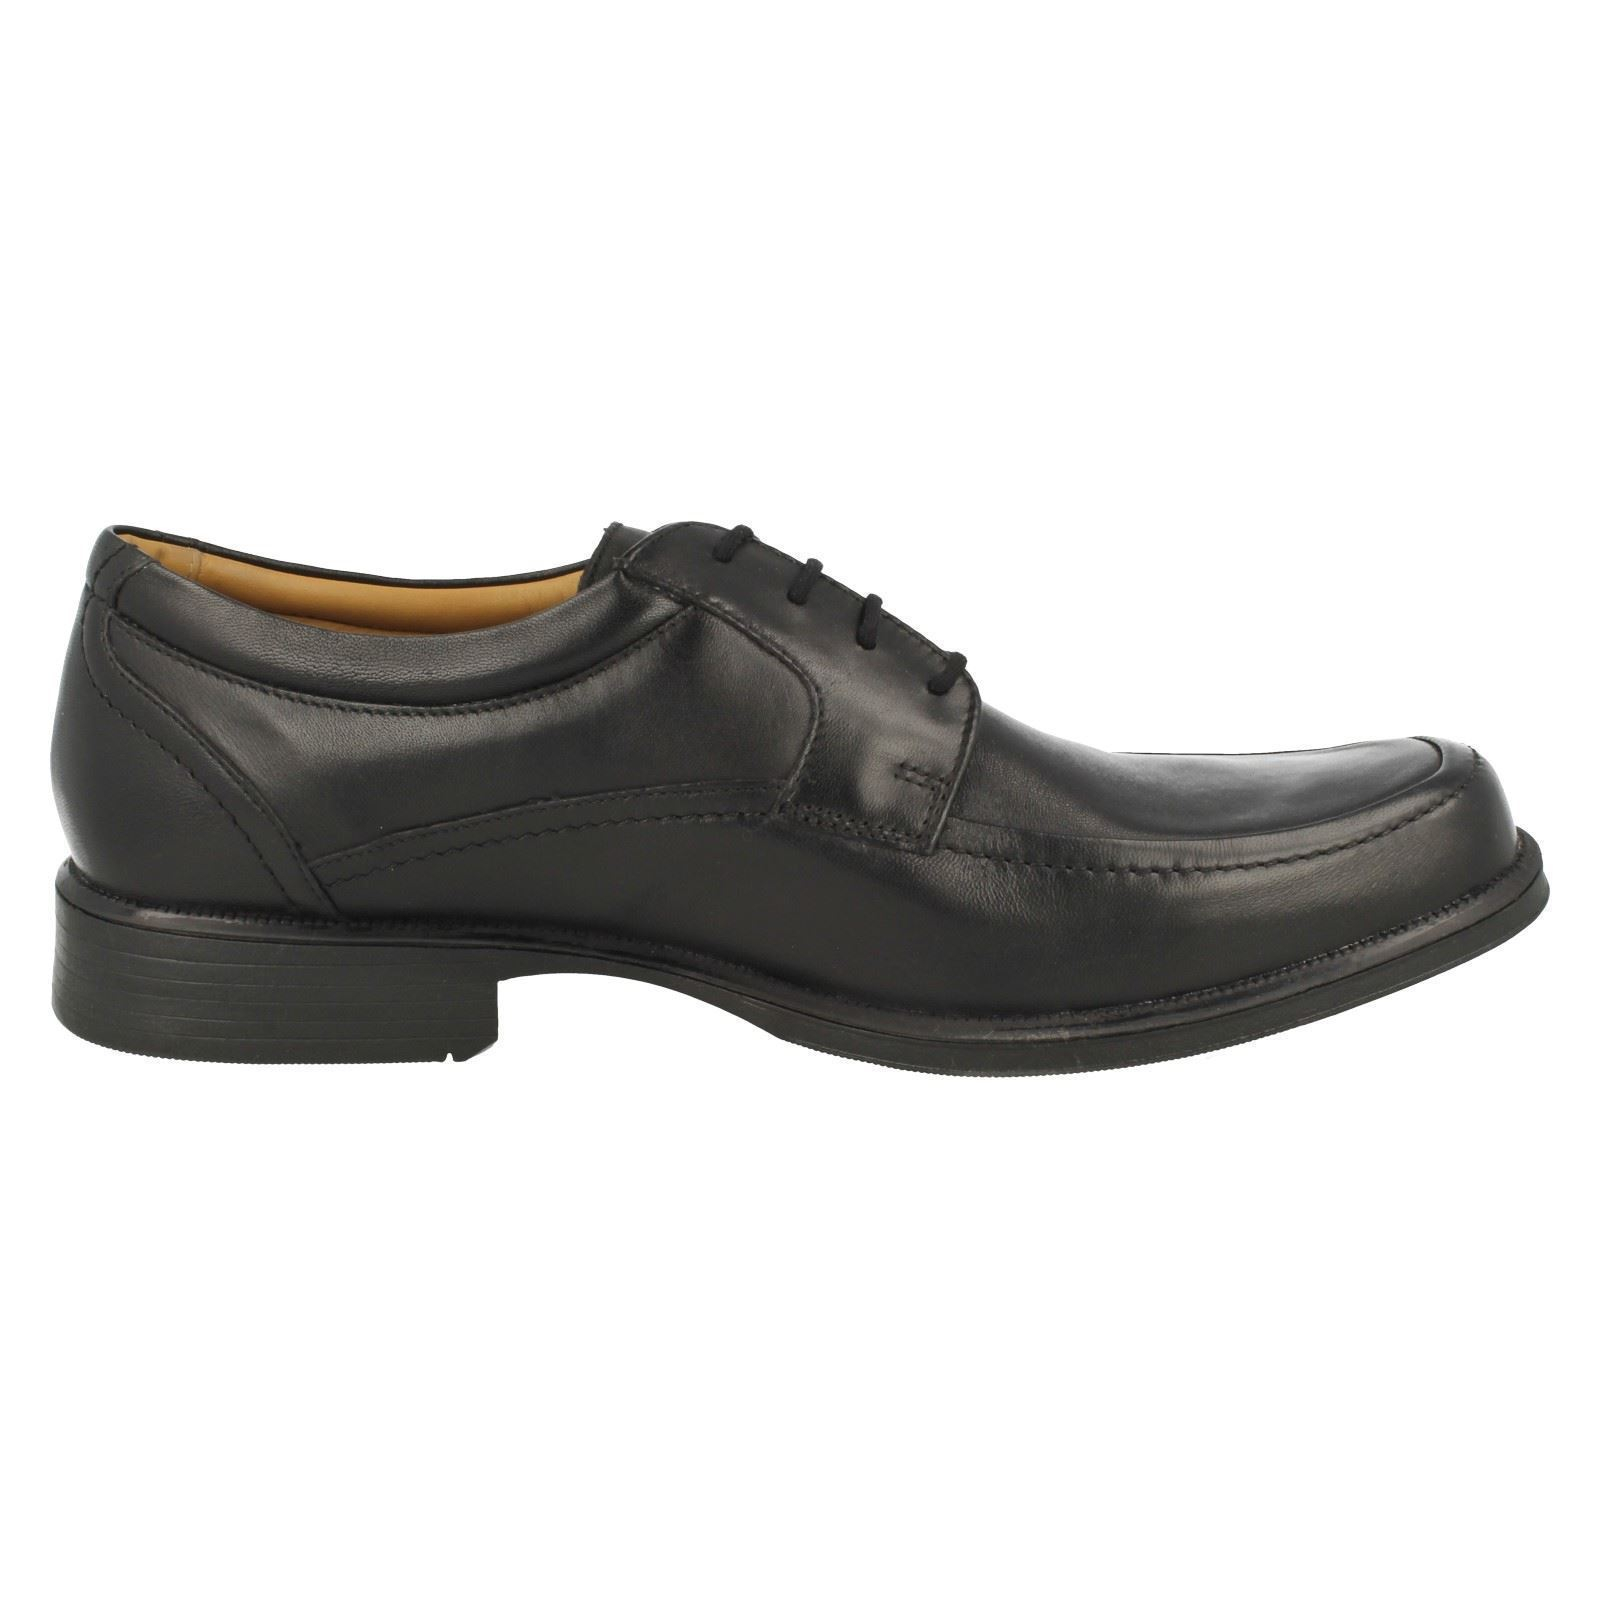 Herren Clarks Schuhes  'Hang Spring' The Style  Schuhes K 197831